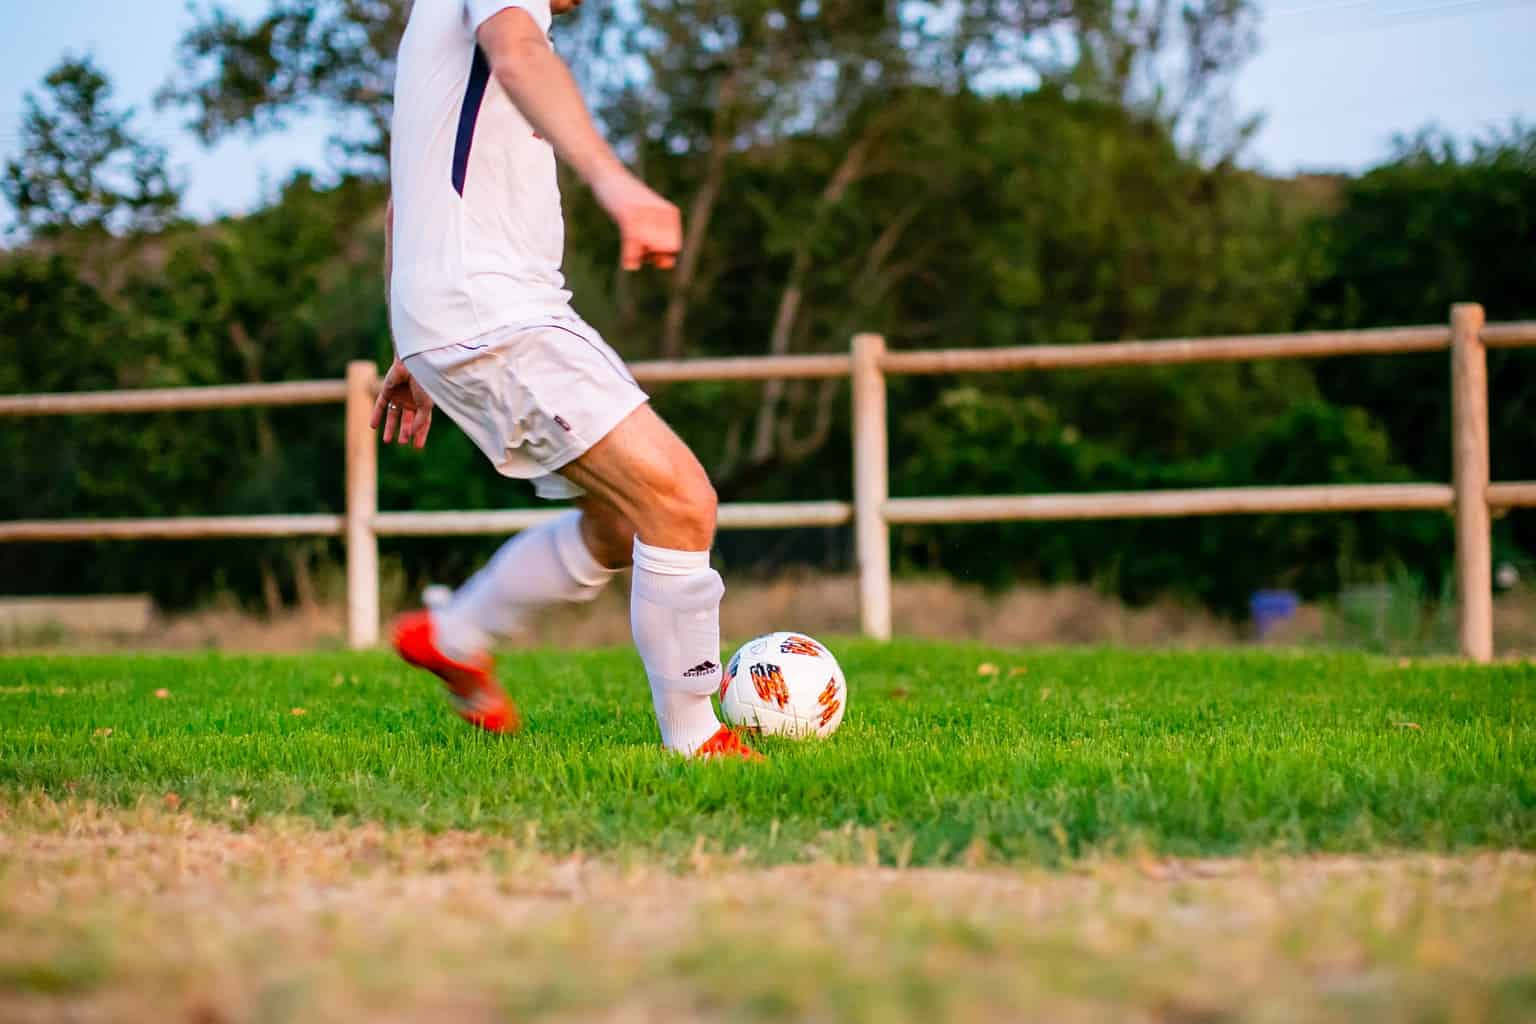 Man about to kick the soccer ball in the field